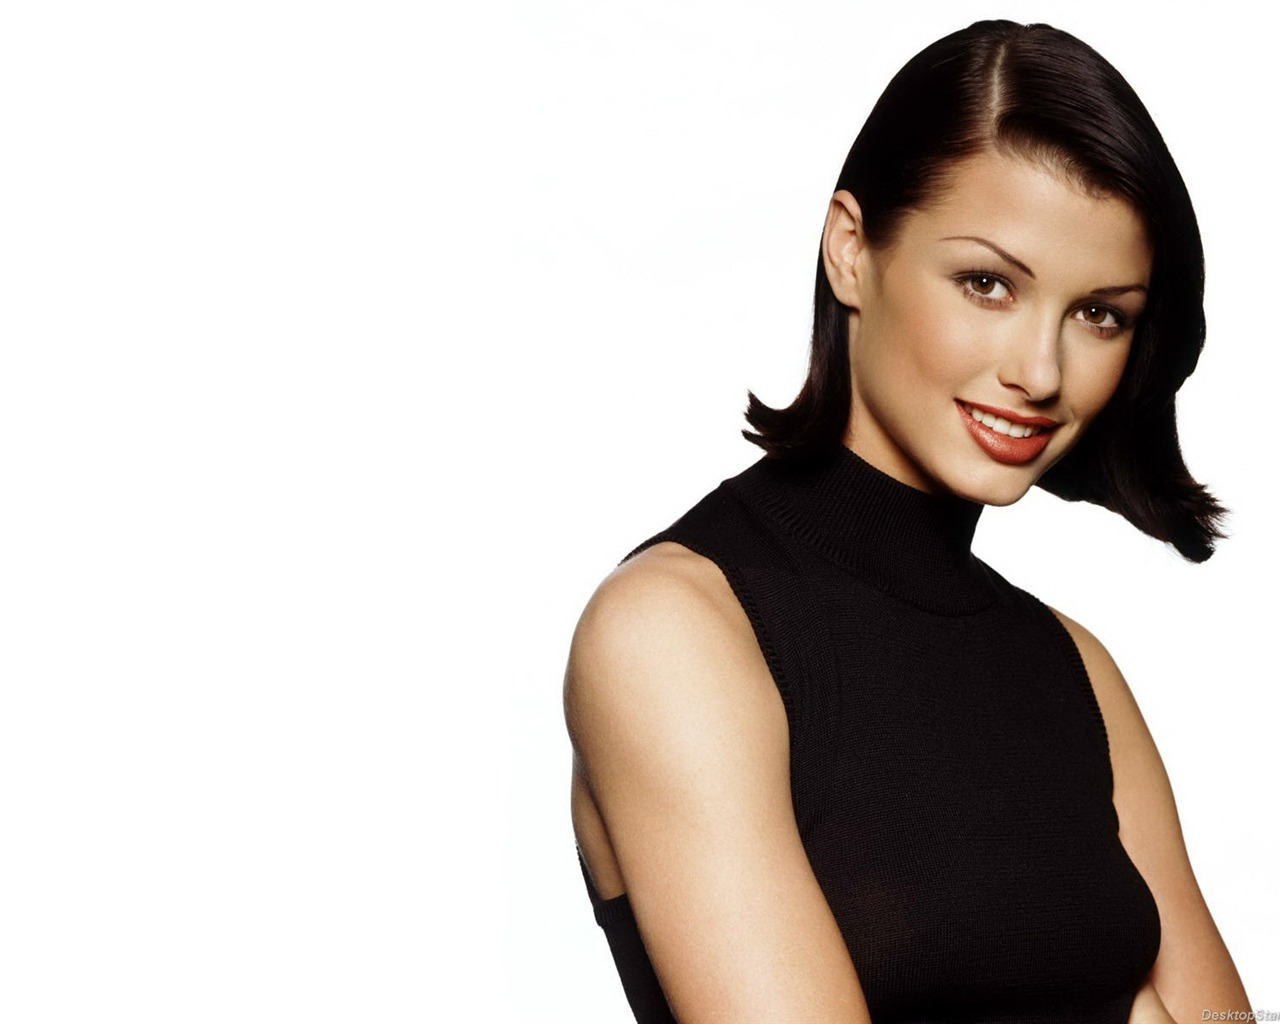 Bridget Moynahan #011 - 1280x1024 Wallpapers Pictures Photos Images